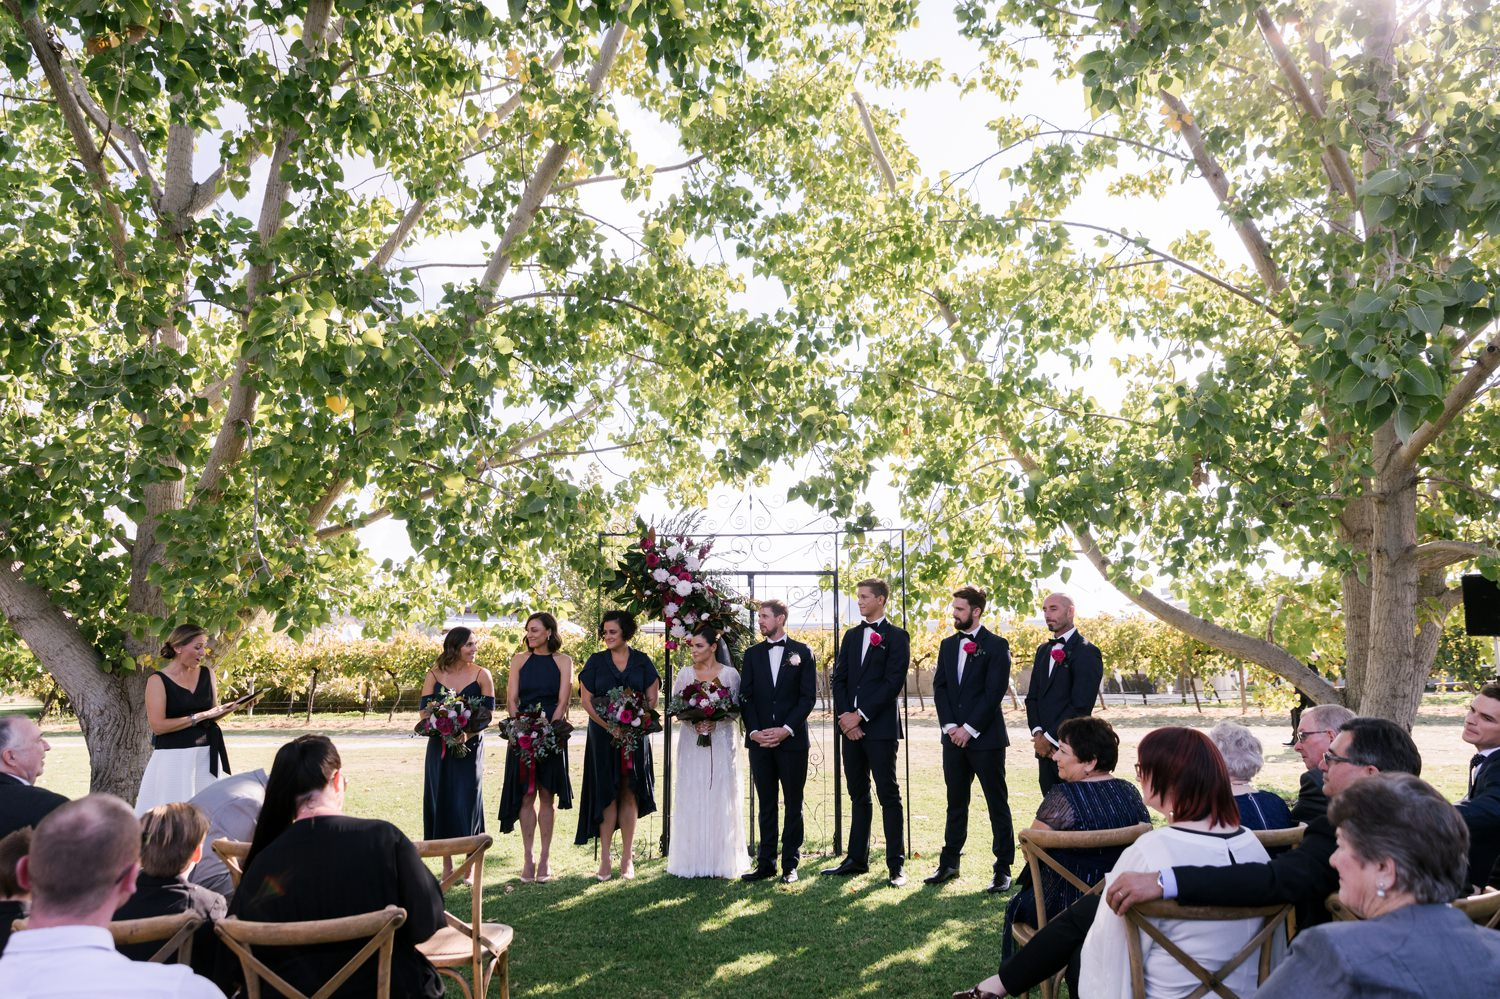 sarah jared the vinegrove mudgee canberra wedding photographer erin latimore 53.jpg